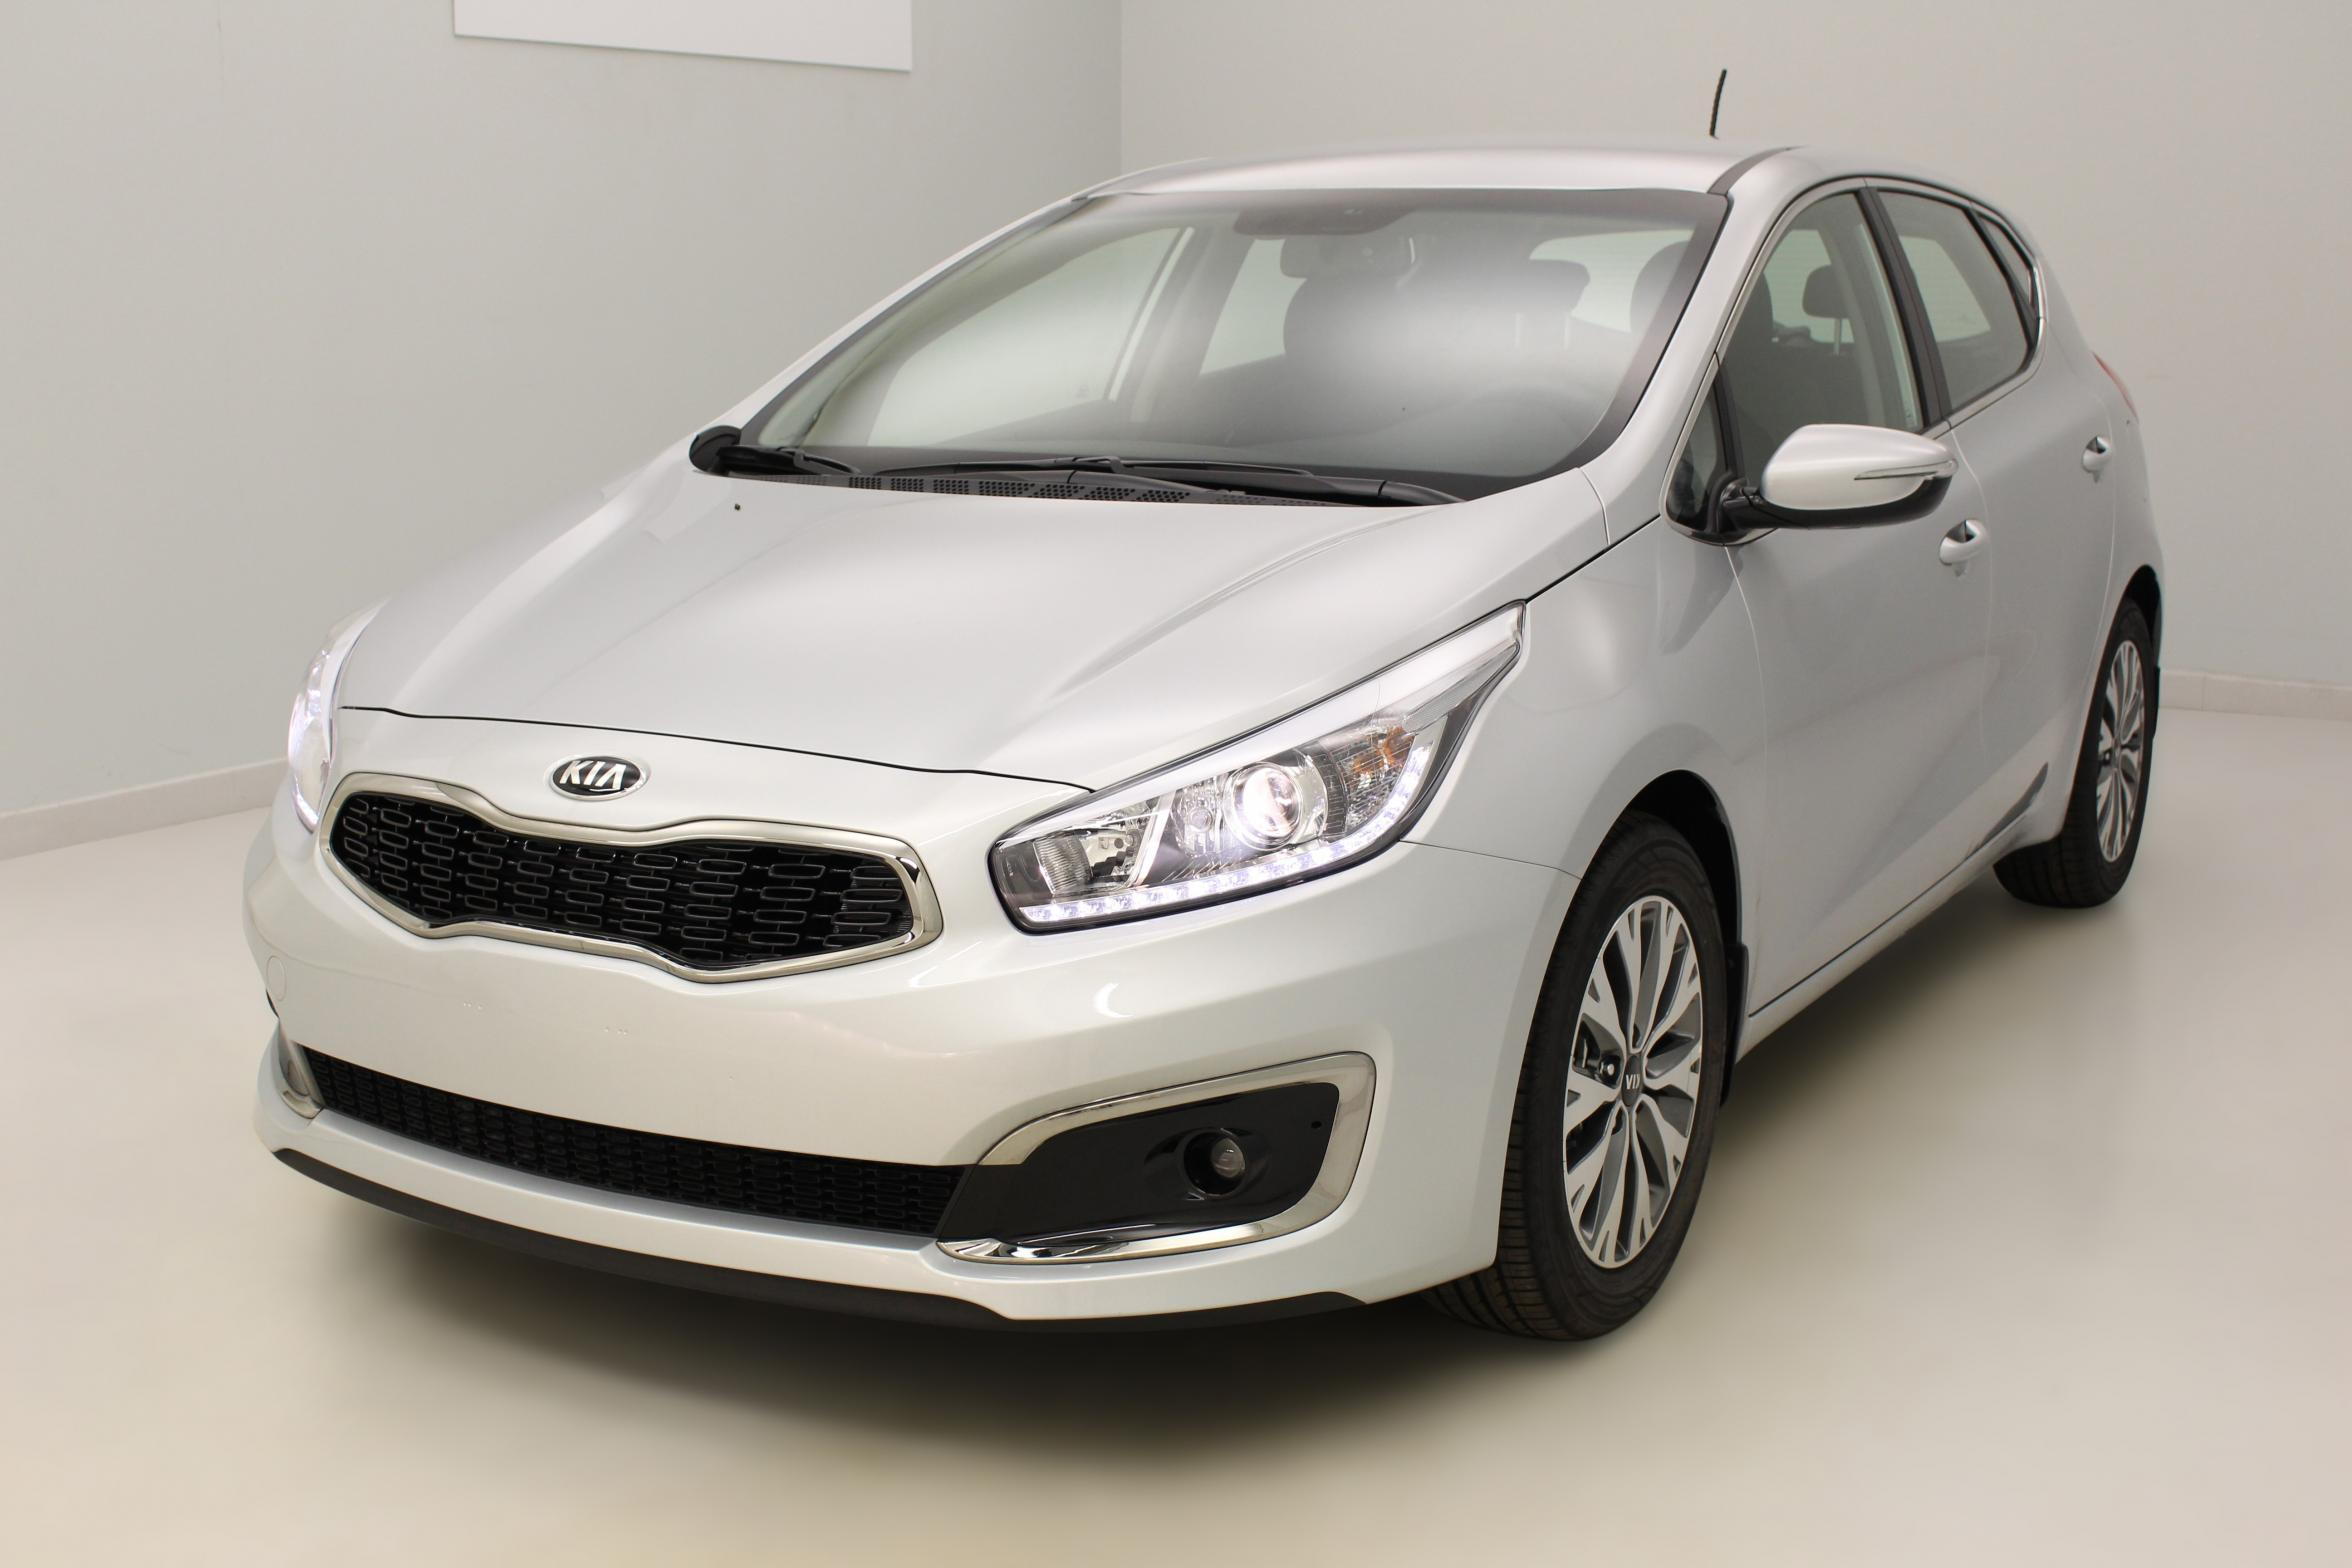 kia ceed 1 0 t gdi 120 ch active gris acier avec options 17 251. Black Bedroom Furniture Sets. Home Design Ideas